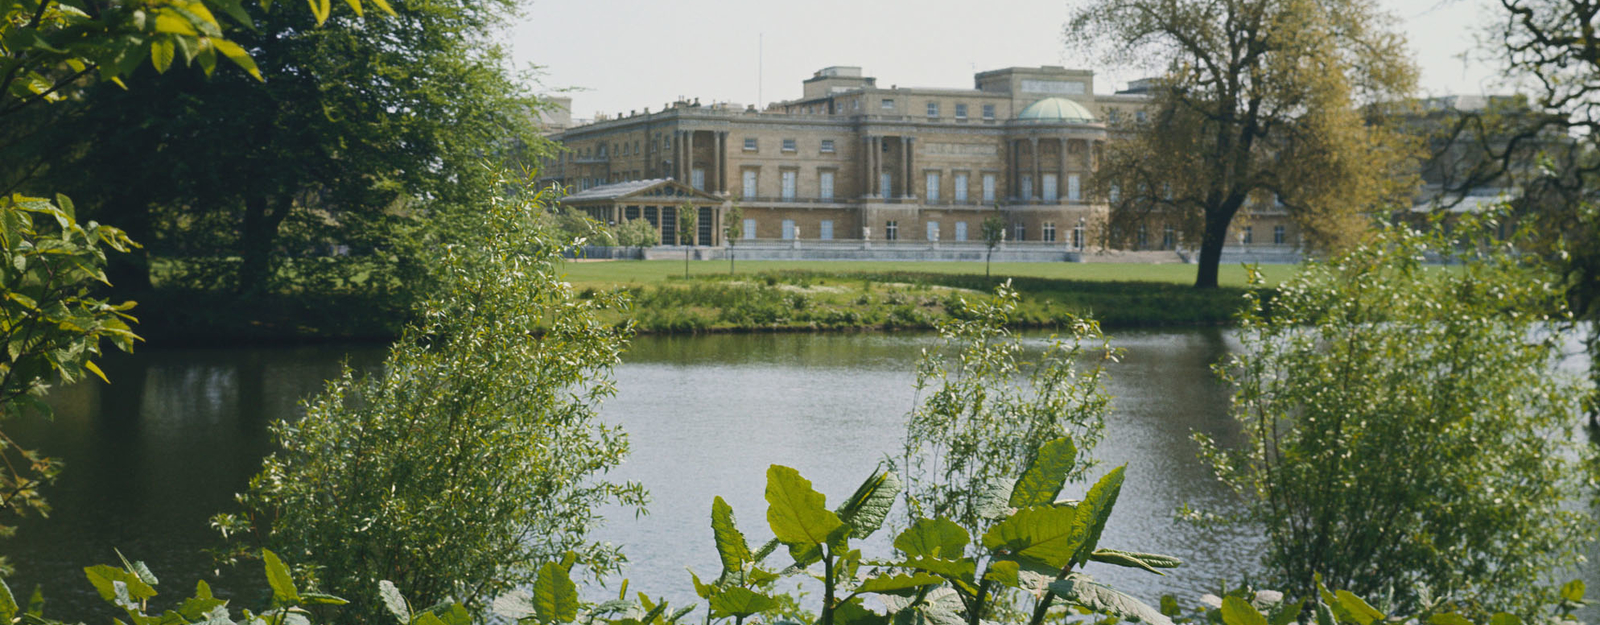 The rear facade of Buckingham Palace seen from the garden lake